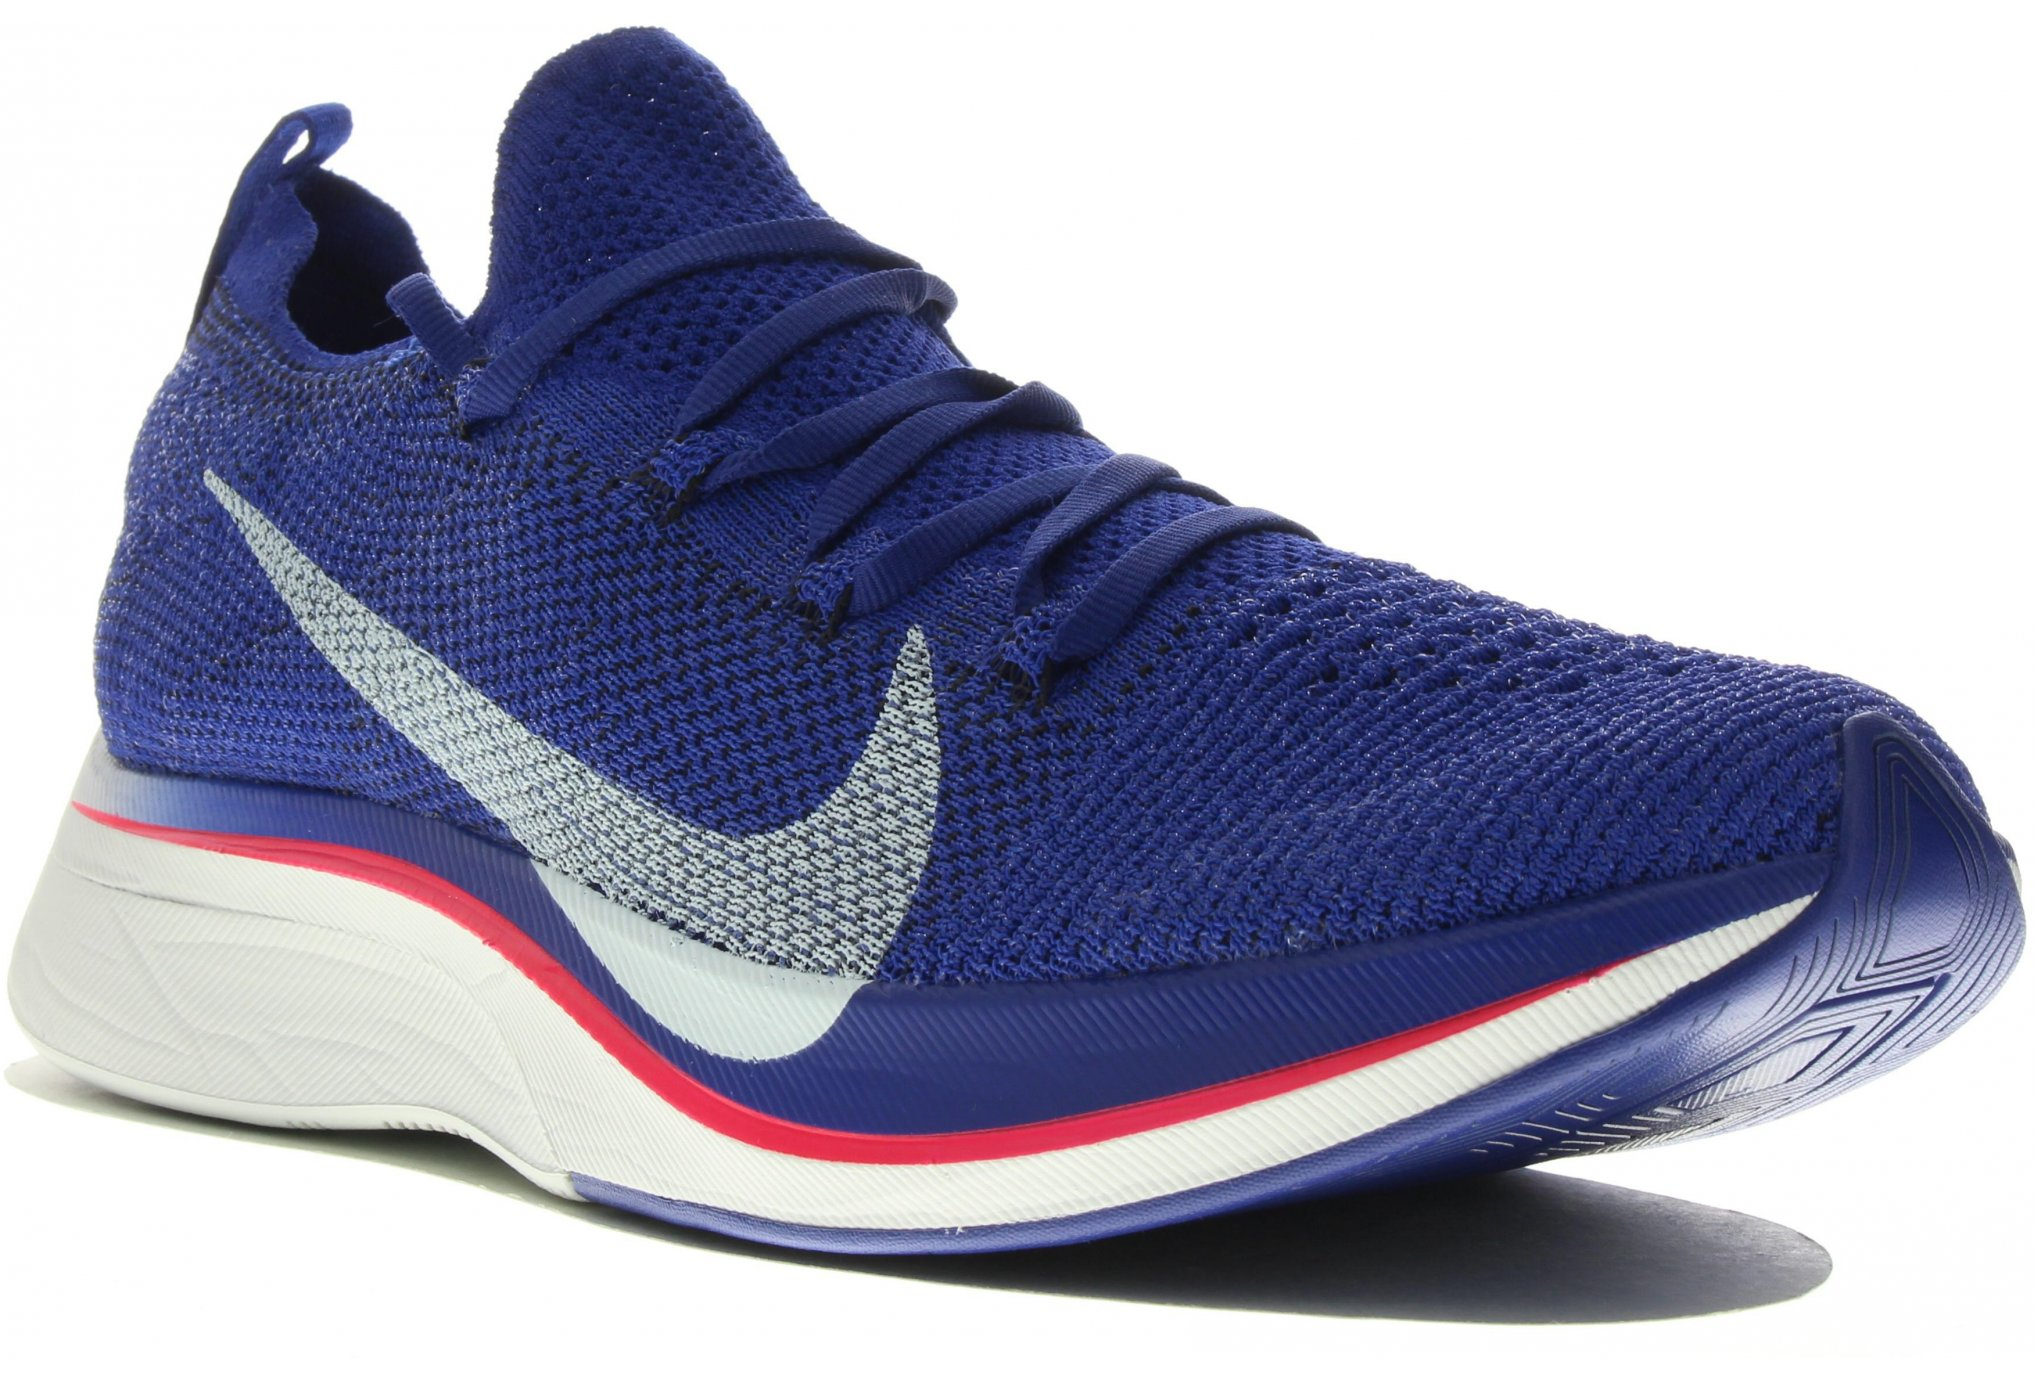 Nike Zoom VaporFly 4% Flyknit Fast Chaussures homme